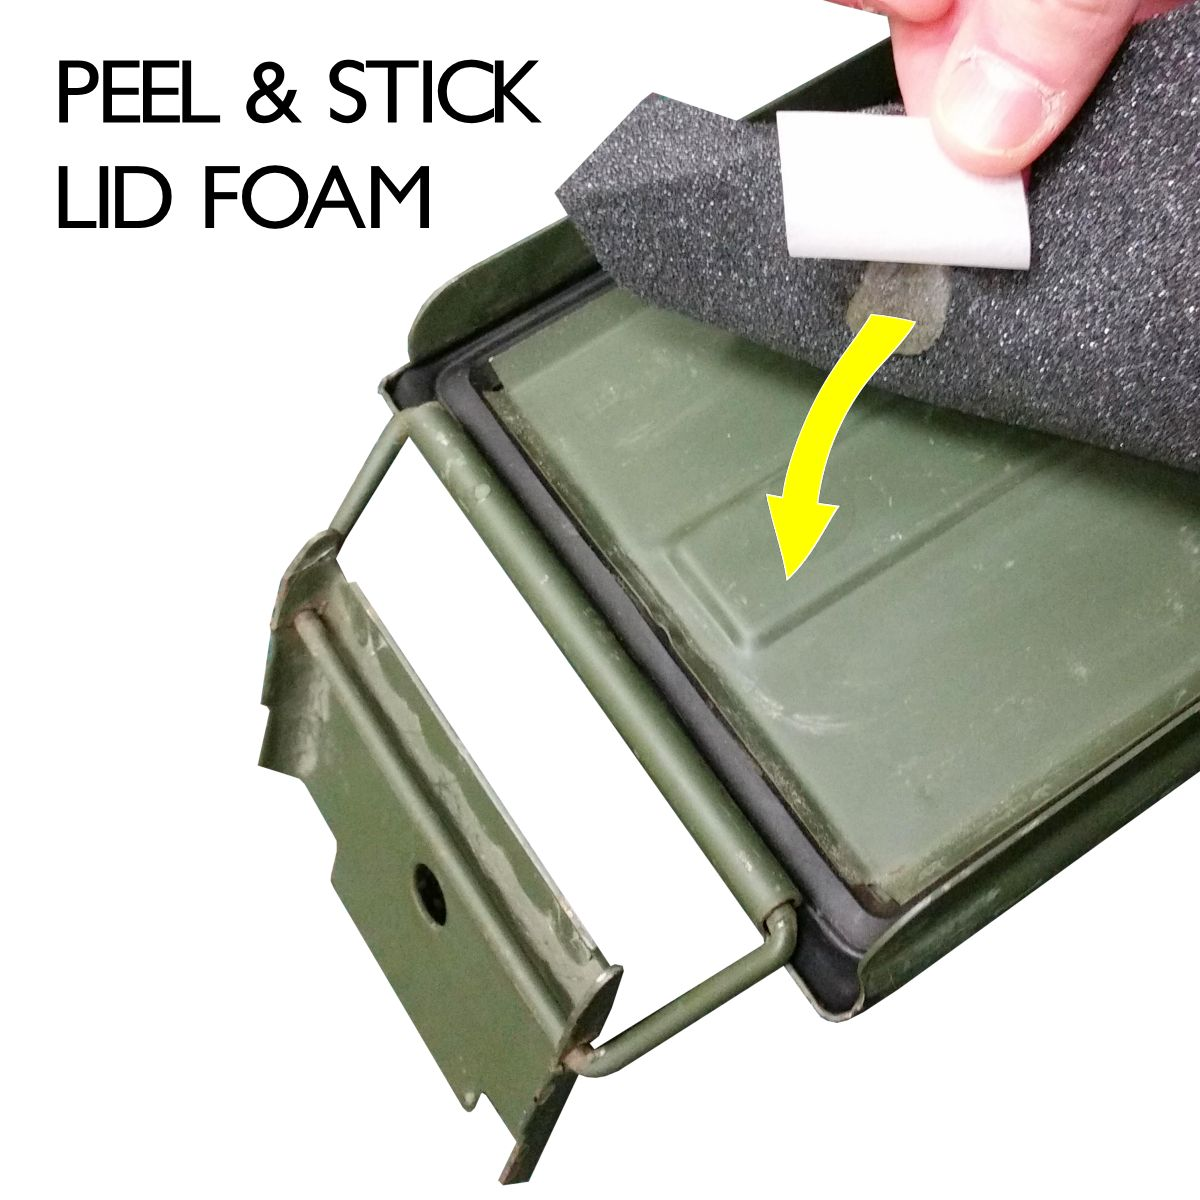 Peel & stick lid foam